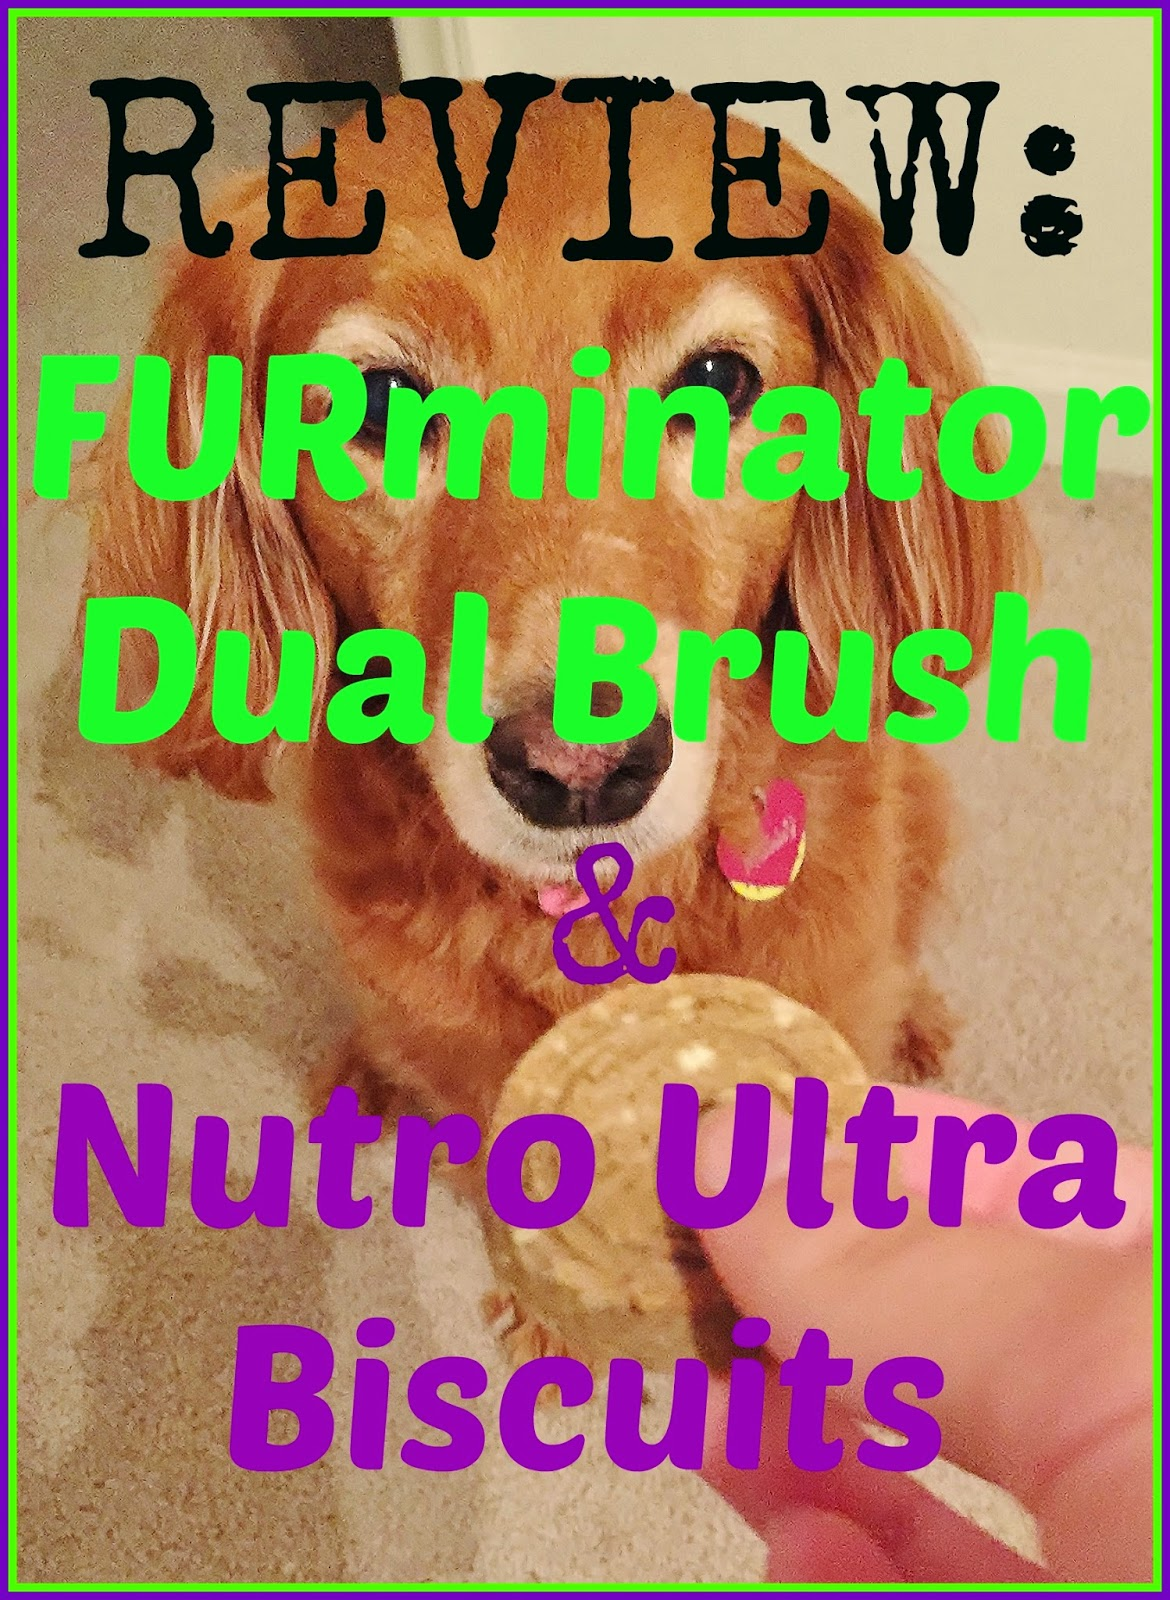 Pets, Review, FURminator Dual Brush, Nutro Ultra Buscuits, Treats, Dog Brush